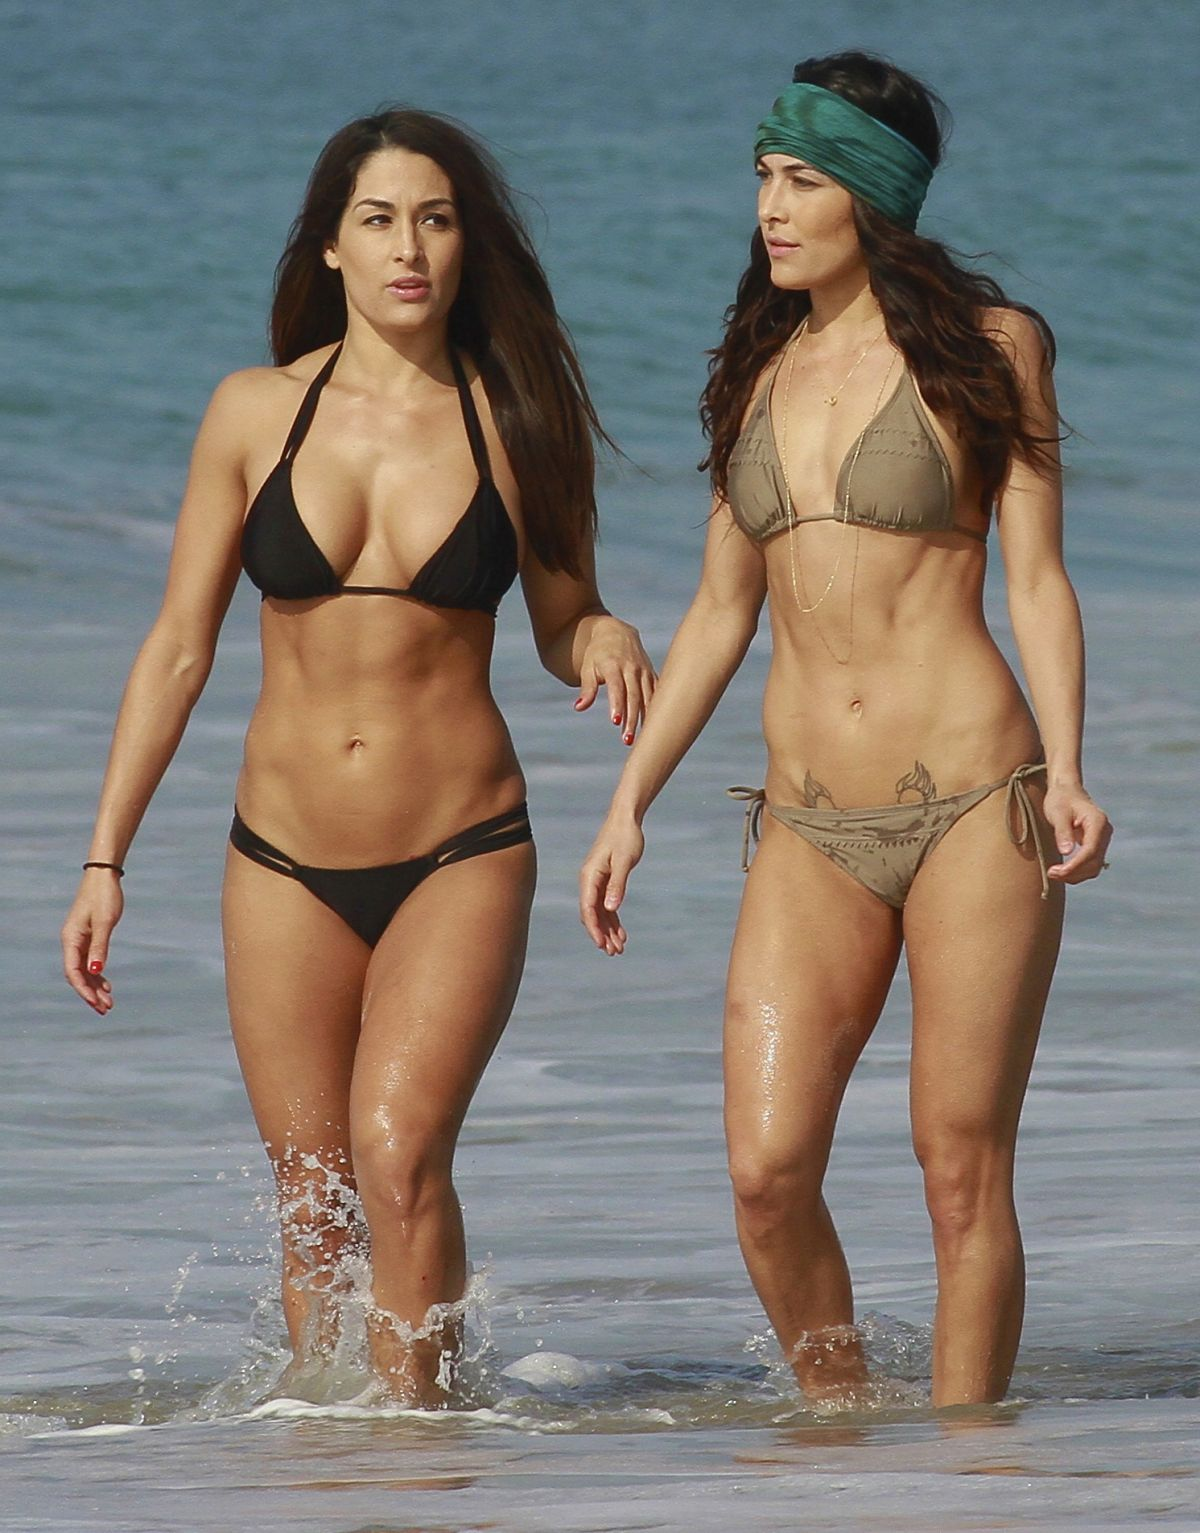 BELLA TWINS, BRIANNA and NICOLE Garcia-Colace in Bikini on the Beach Los Angeles